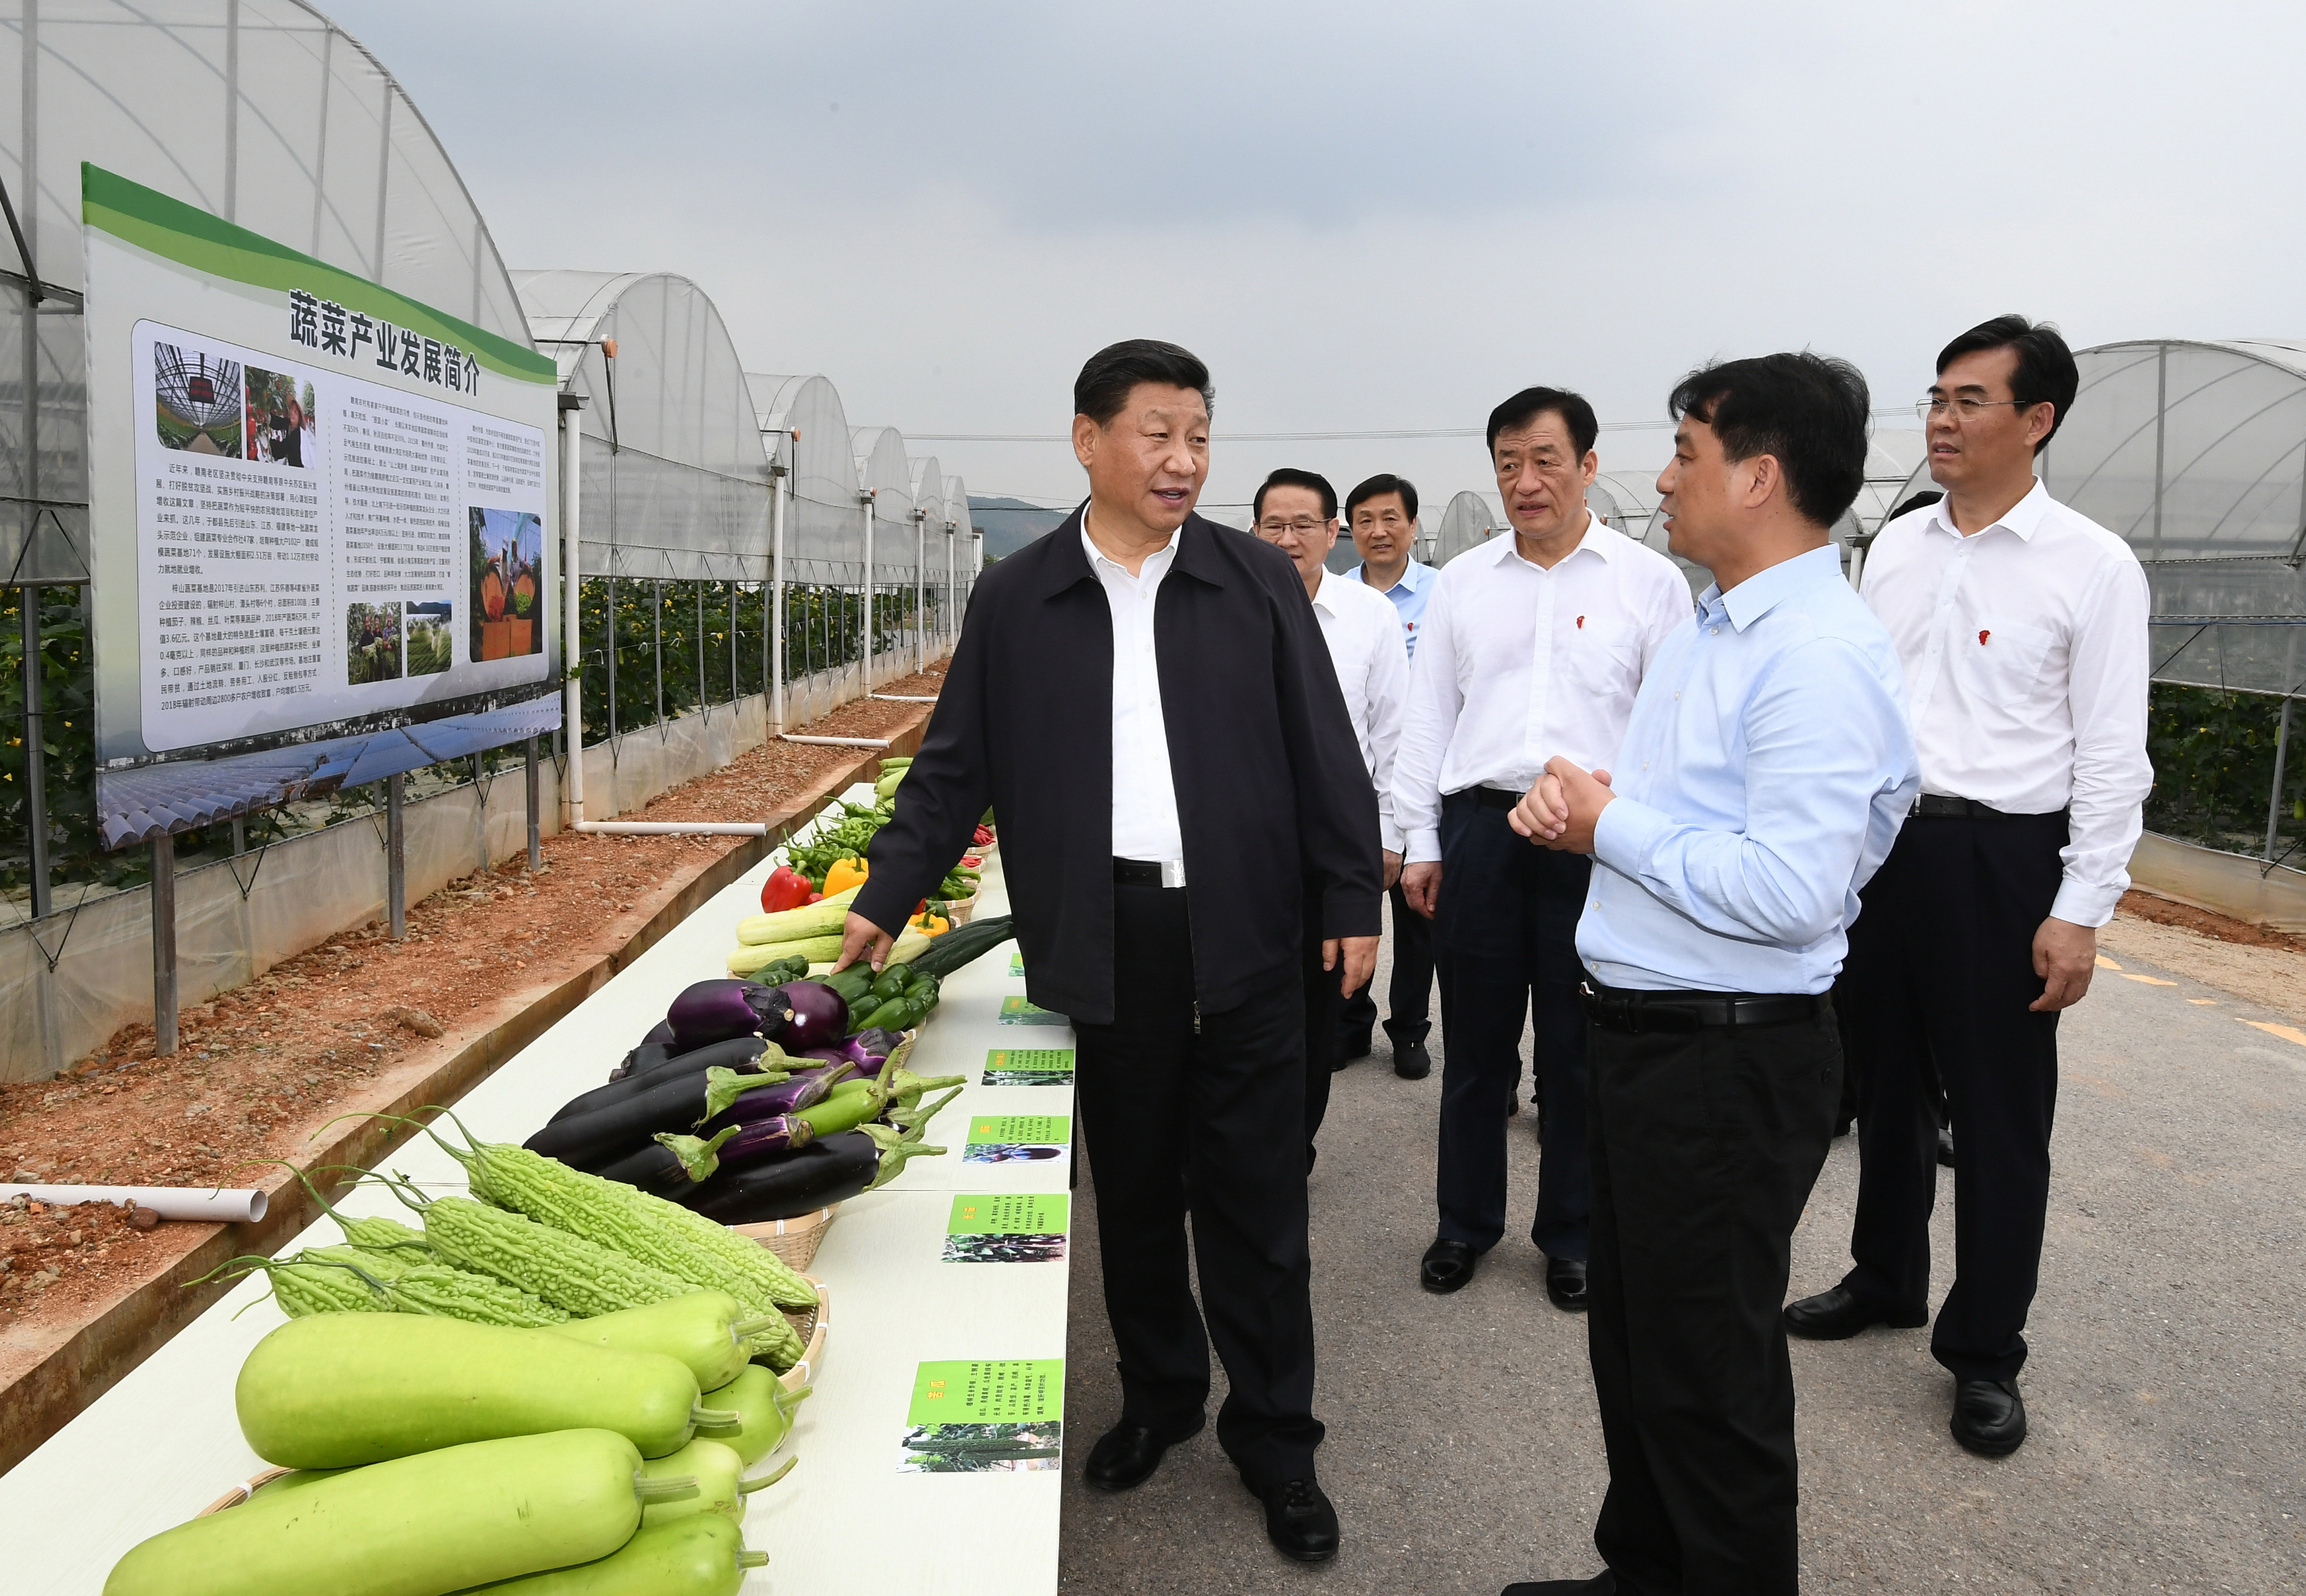 Life will get better like sesame in bloom, President Xi said in his Jiangxi tour